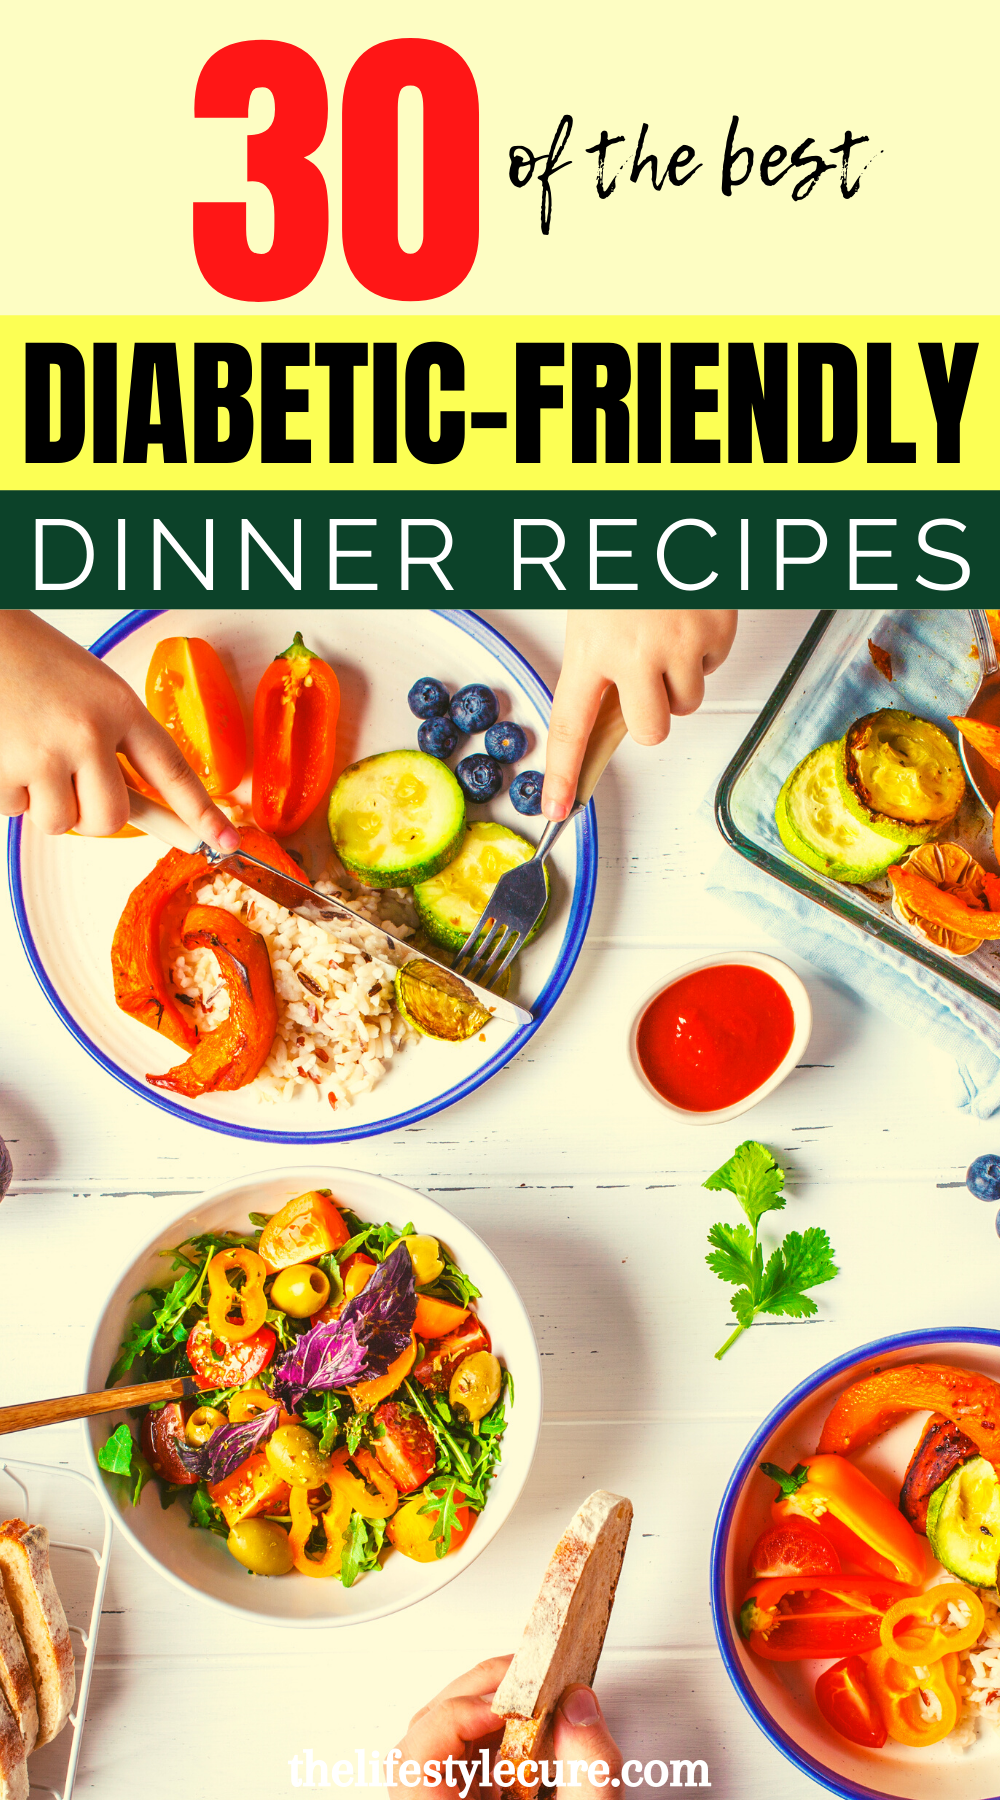 30 Day Easy Diabetic Friendly Recipes Www Thelifestylecure Com Diabetic Friendly Dinner Recipes Healthy Recipes For Diabetics Diabetic Diet Recipes